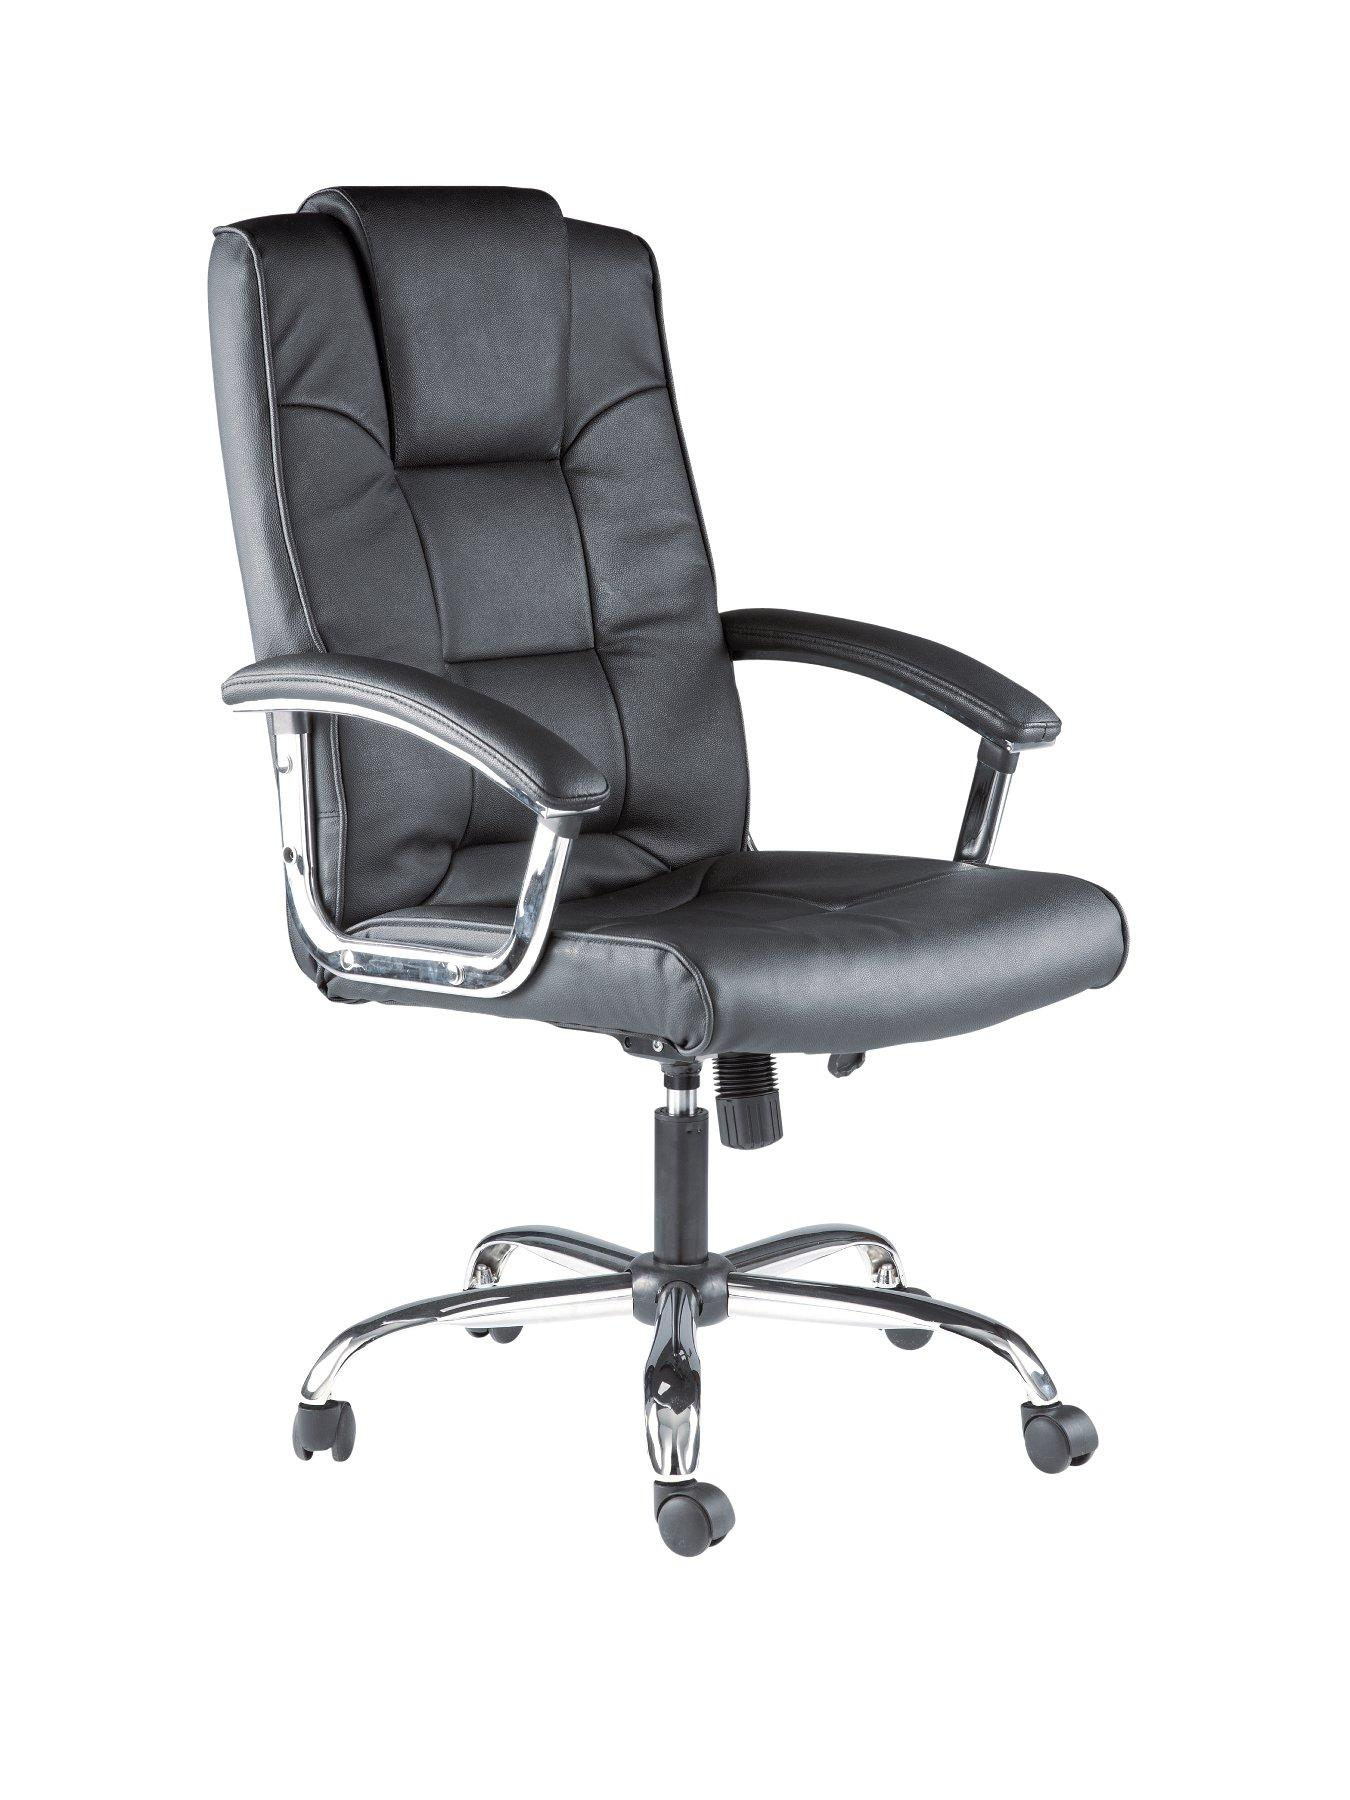 Houston Leather Office Chair, Black,Cream